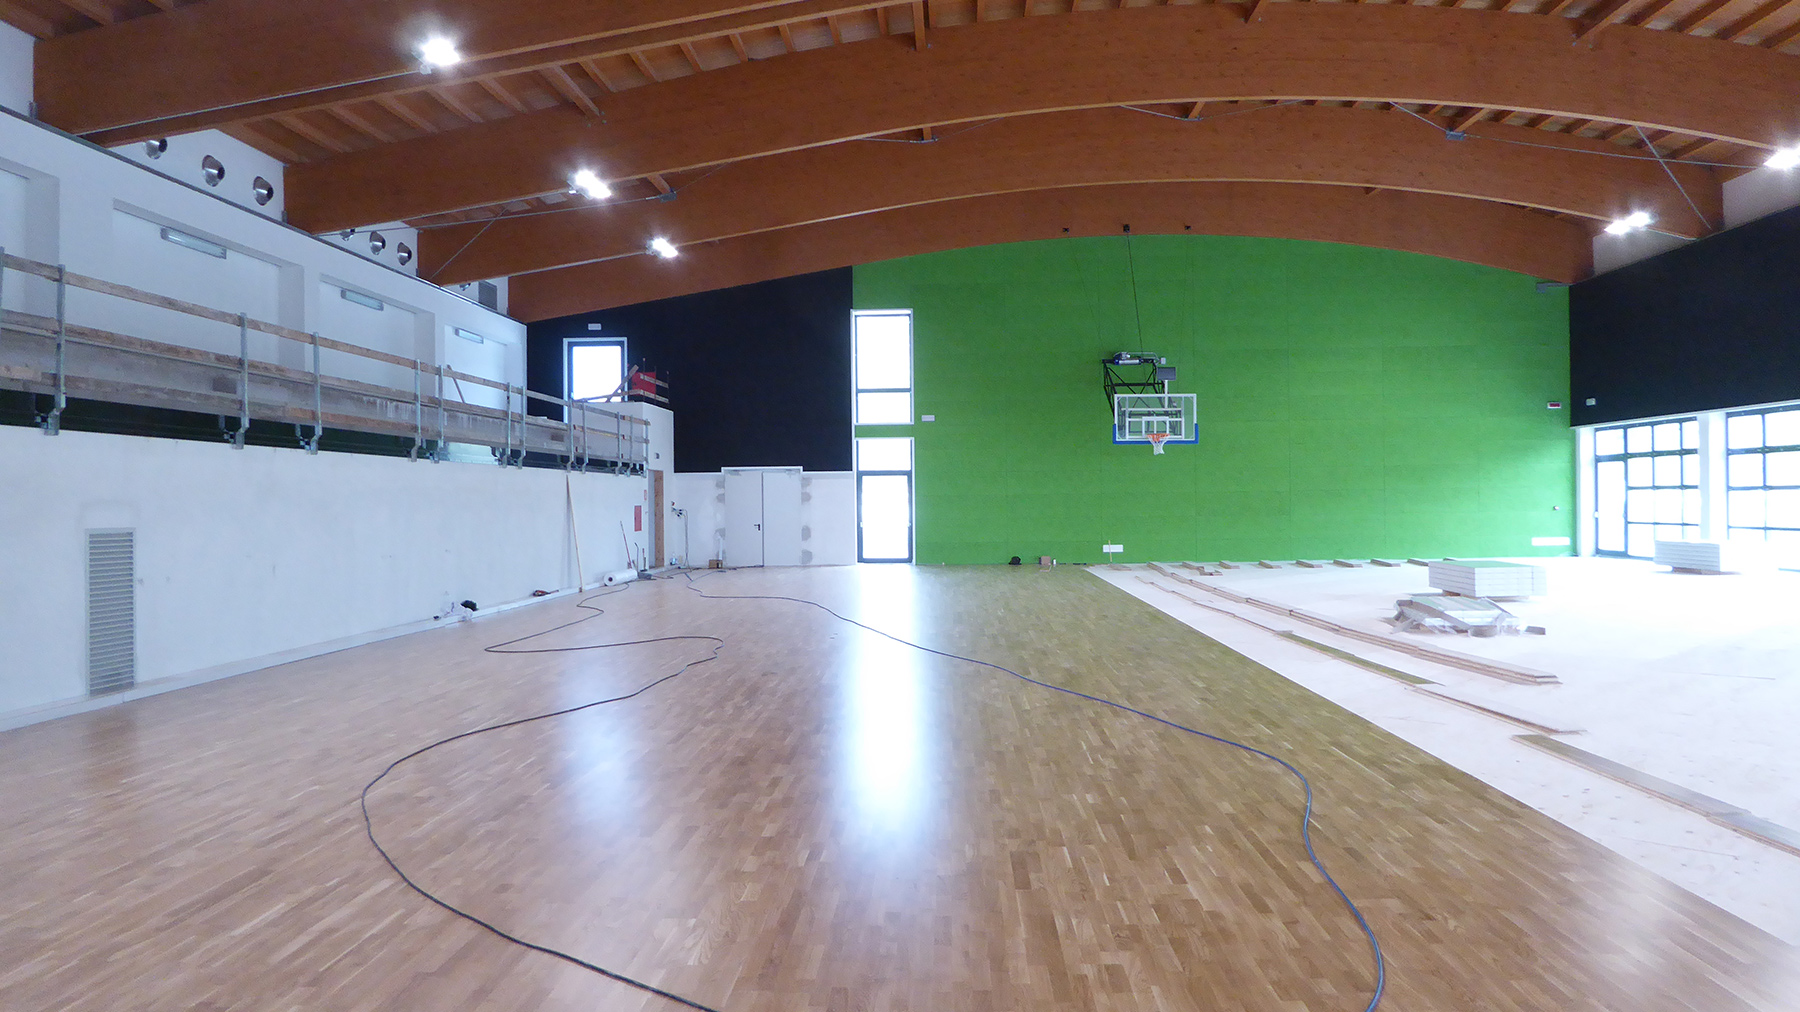 The laying of the sports parquet